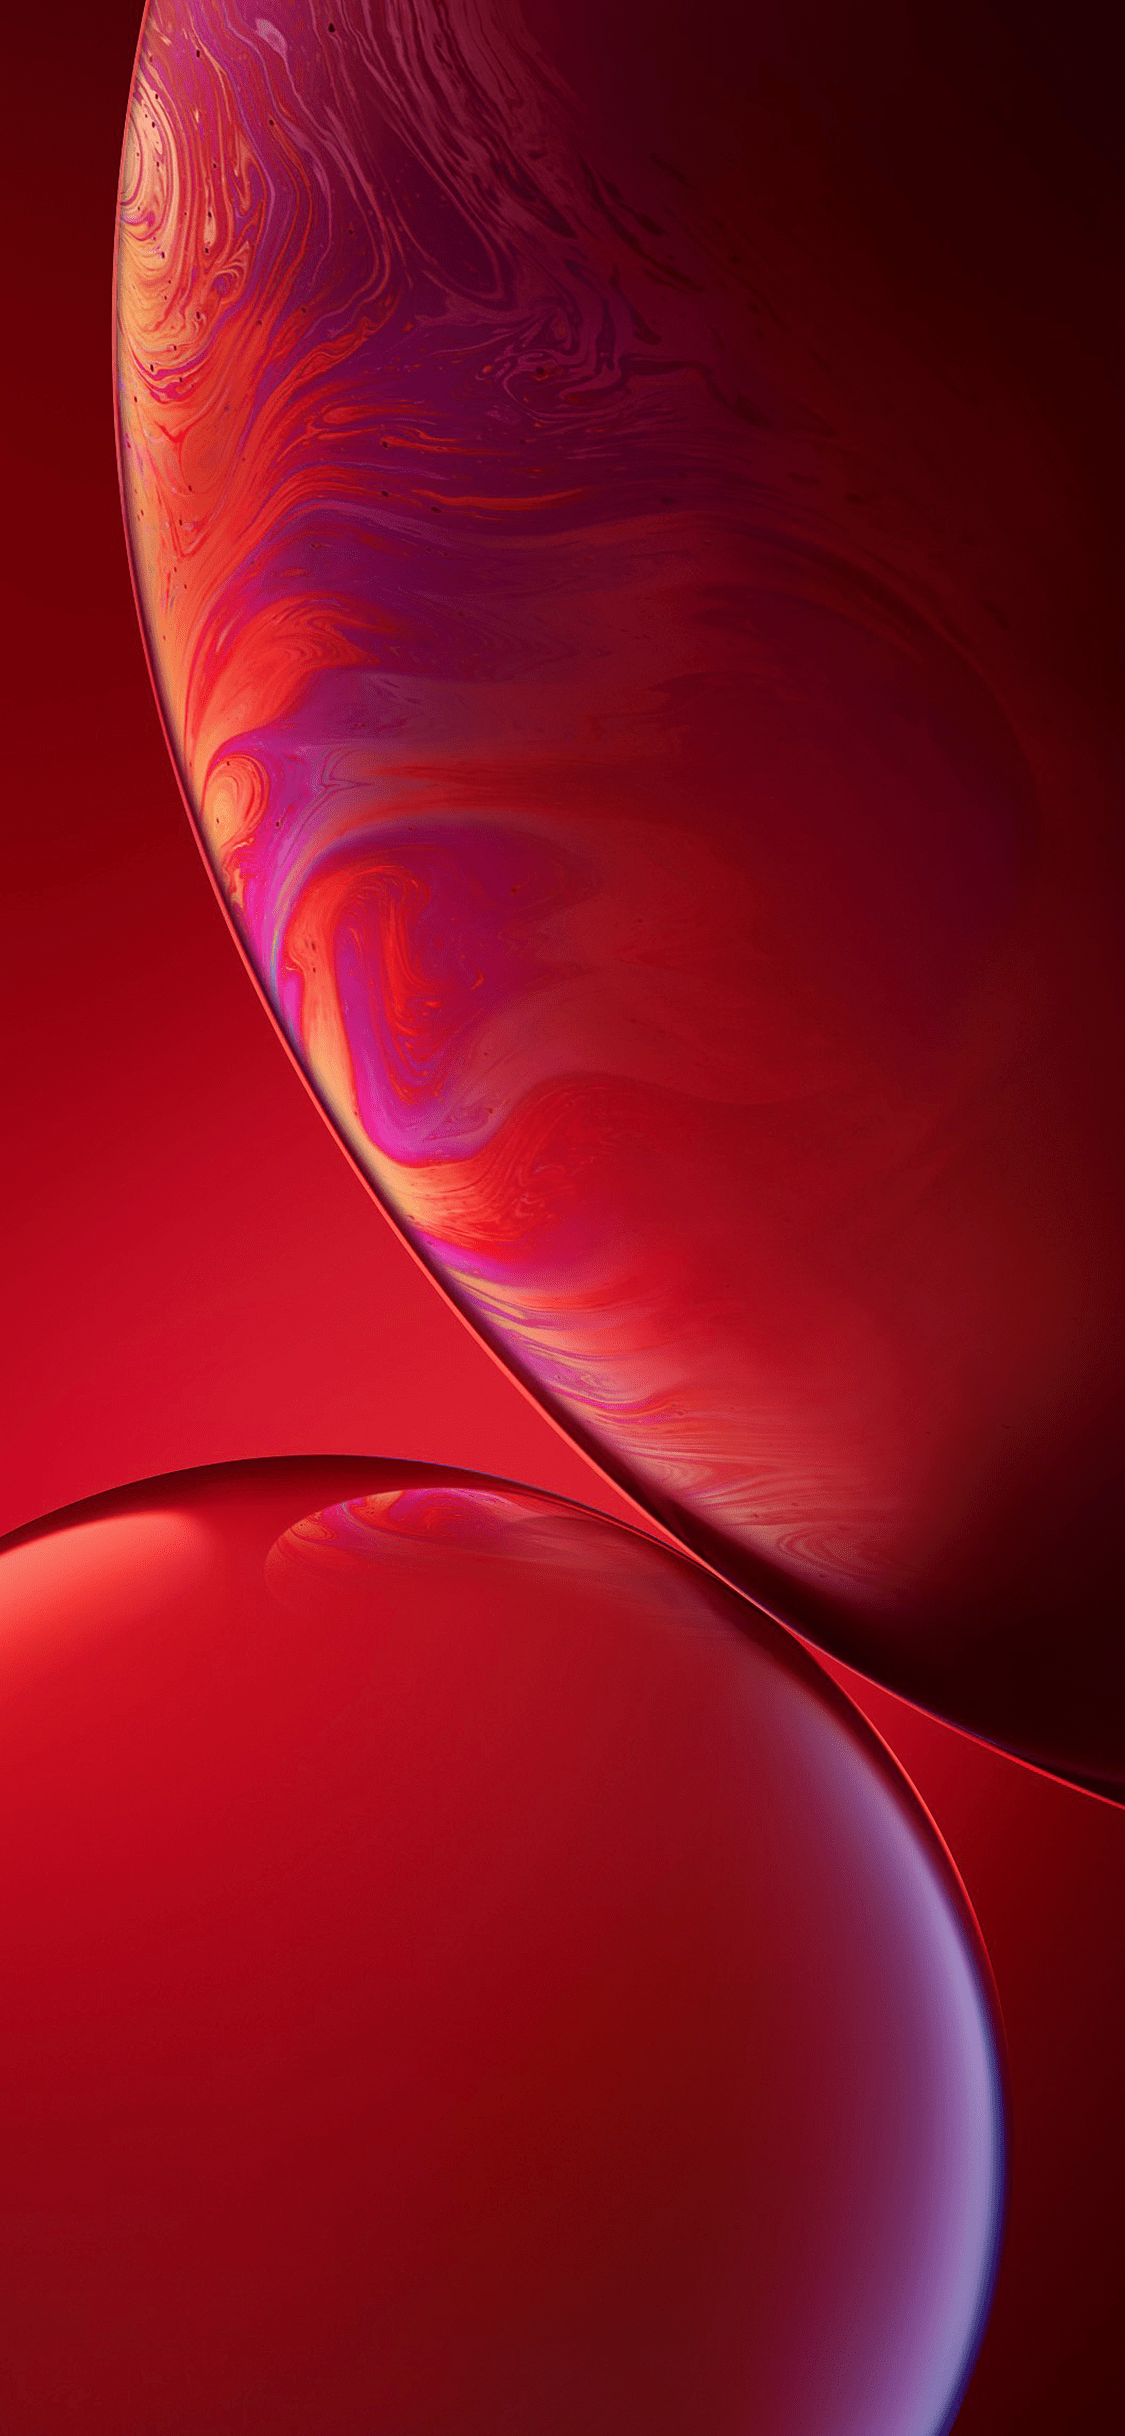 Iphone Xr Stock Wallpaper Product Red Wallpapers Central